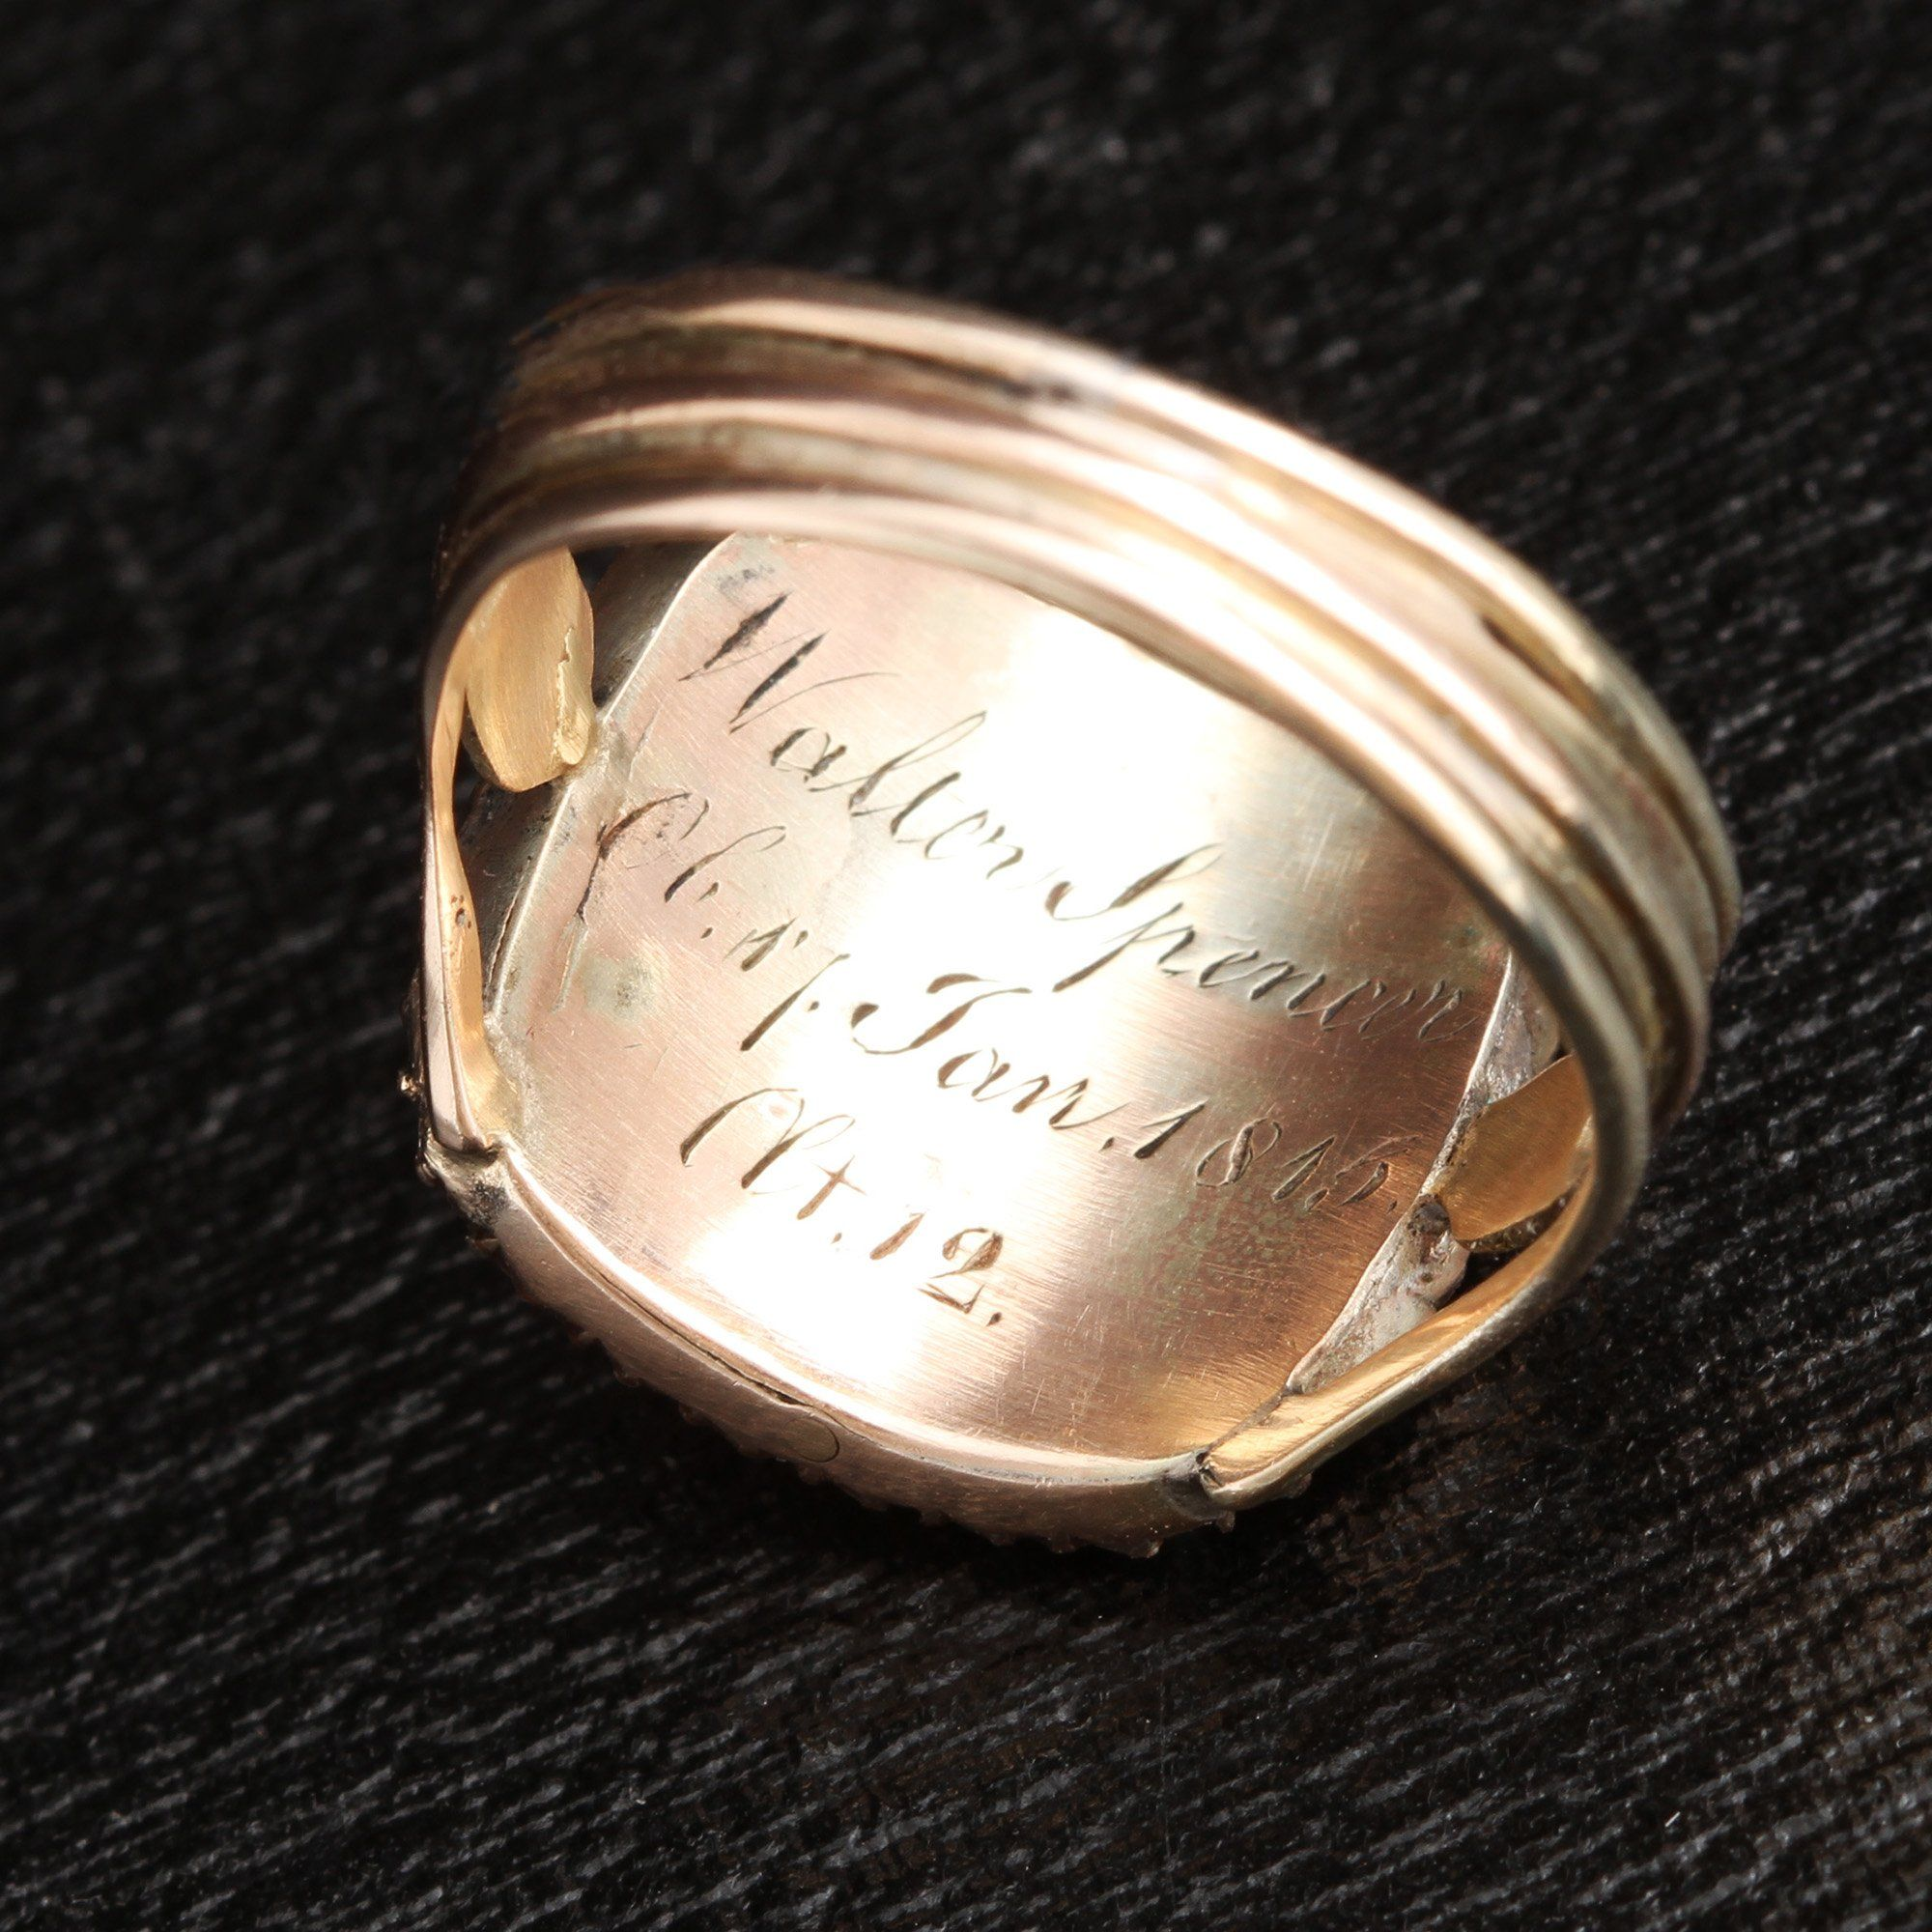 Inscription detail of Georgian Weeping Willow Mourning Ring